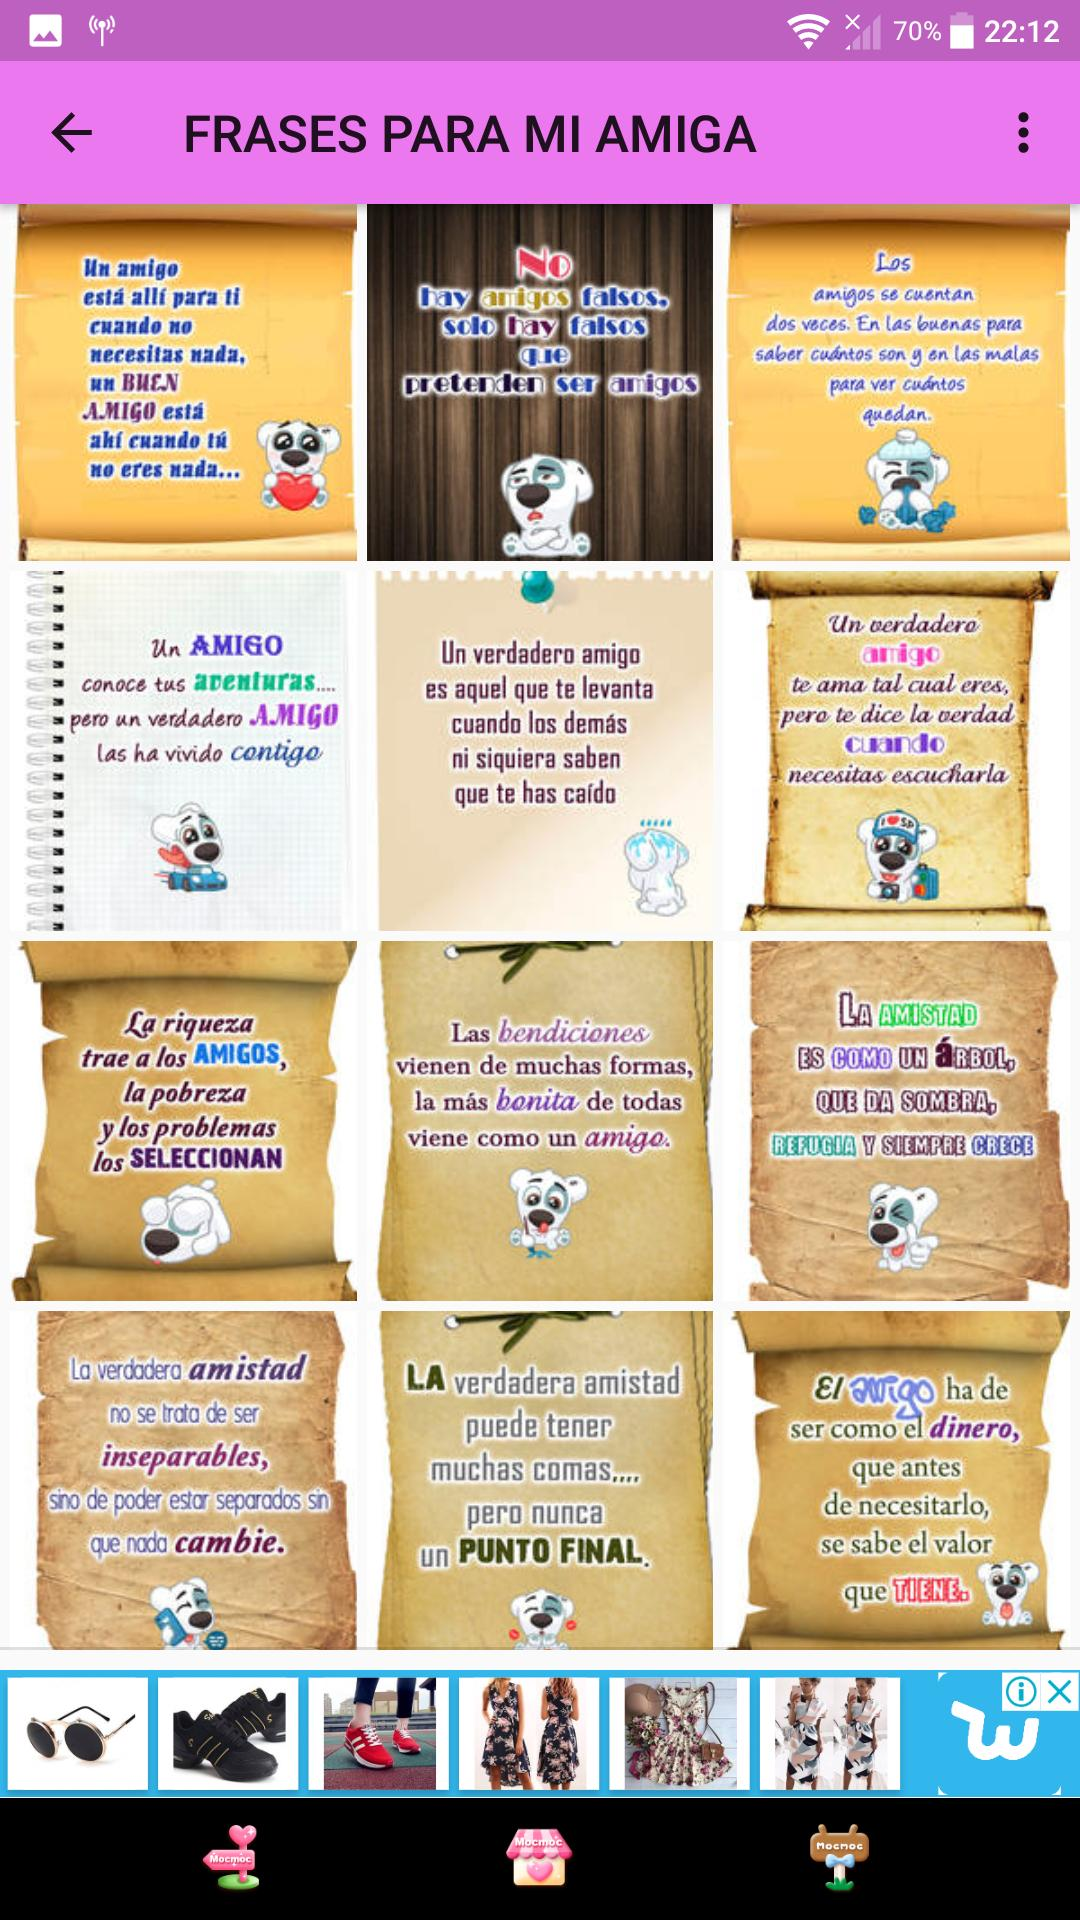 Frases Para Amigas For Android Apk Download